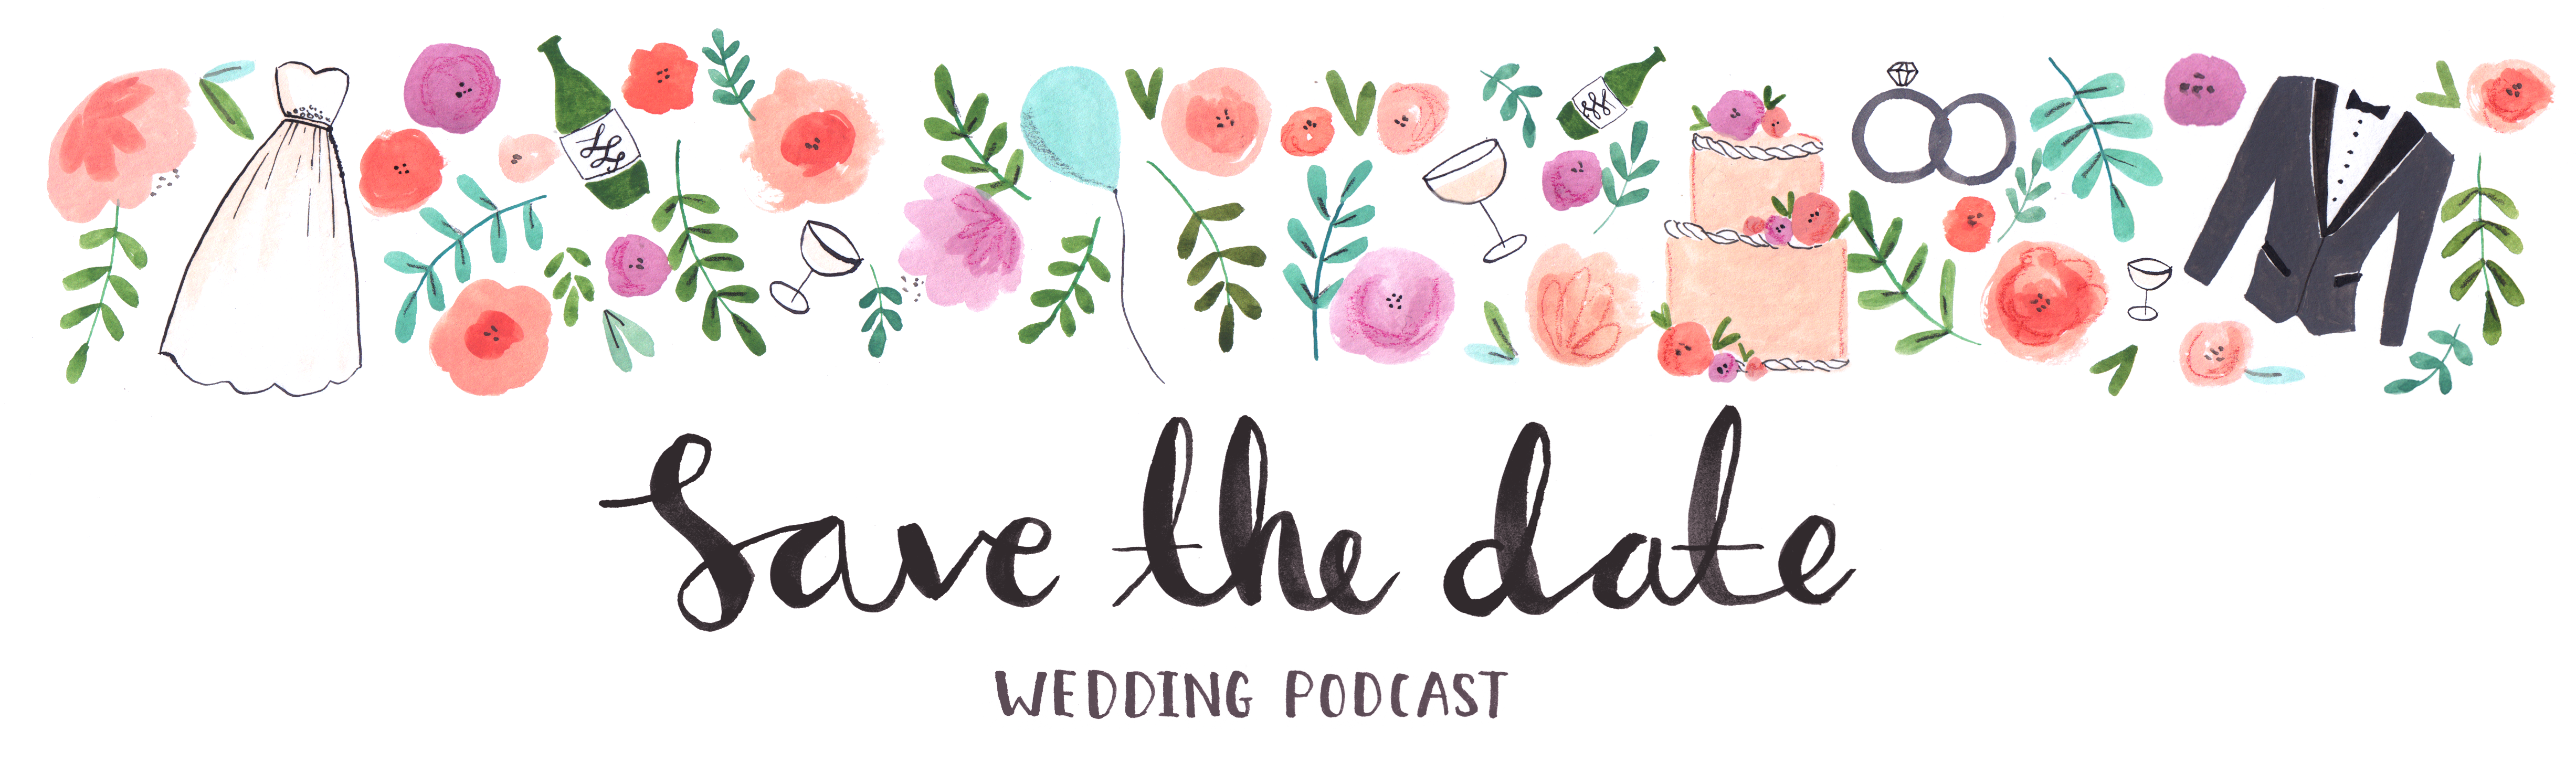 save the date wedding podcast launches new e shop and product line